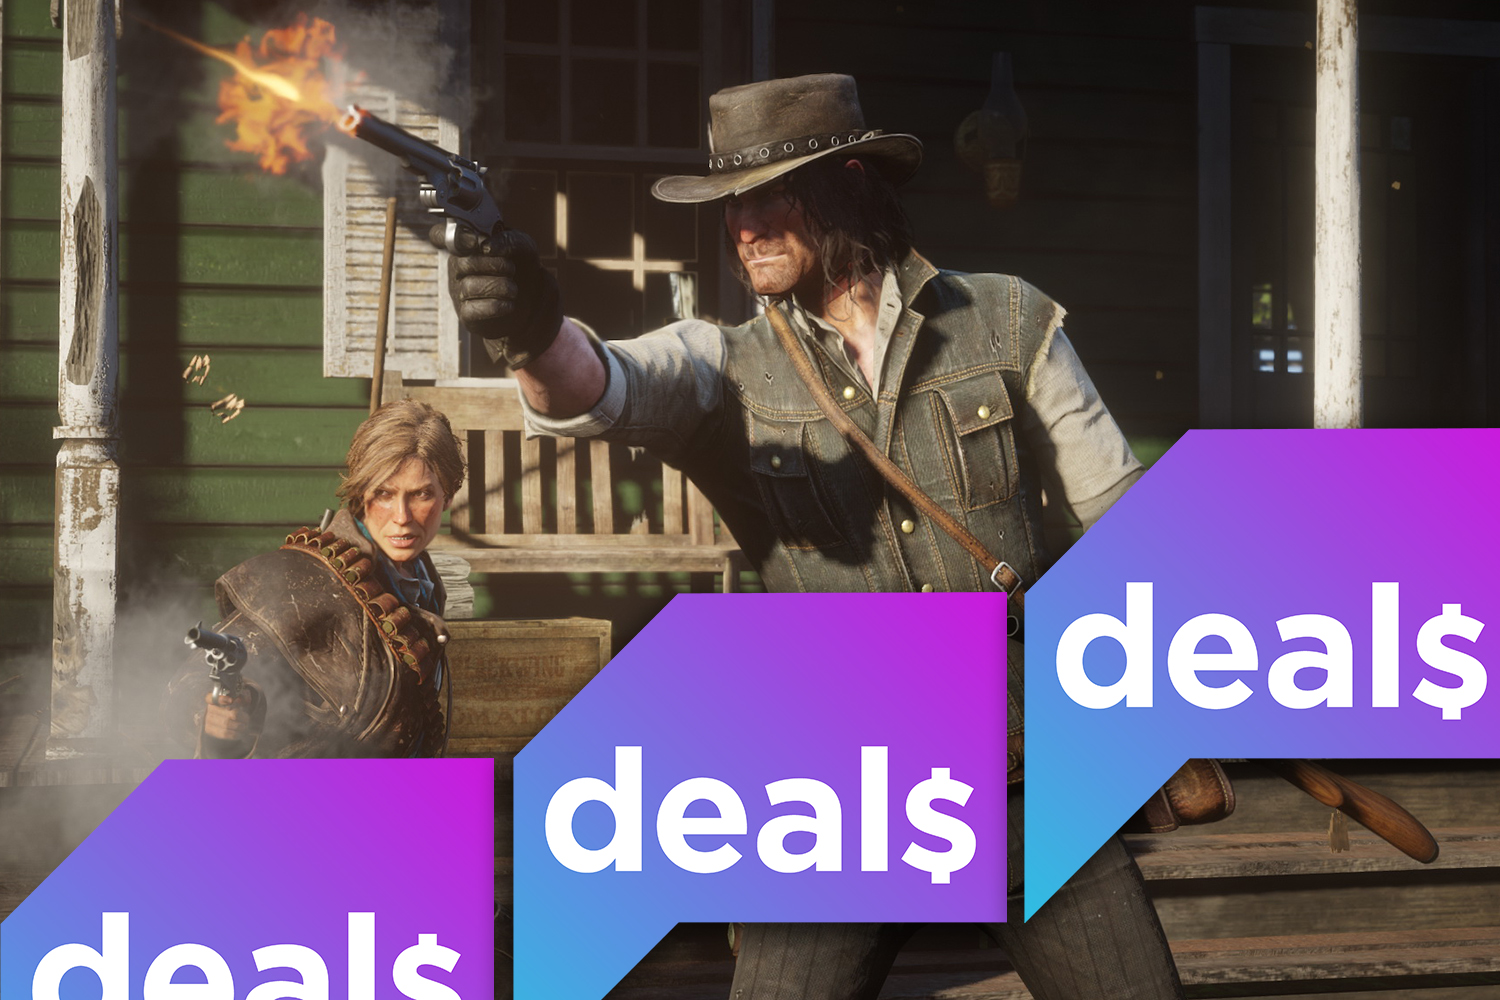 A Red Dead Redemption 2 discount, new Twitch Prime perks, and more gaming deals